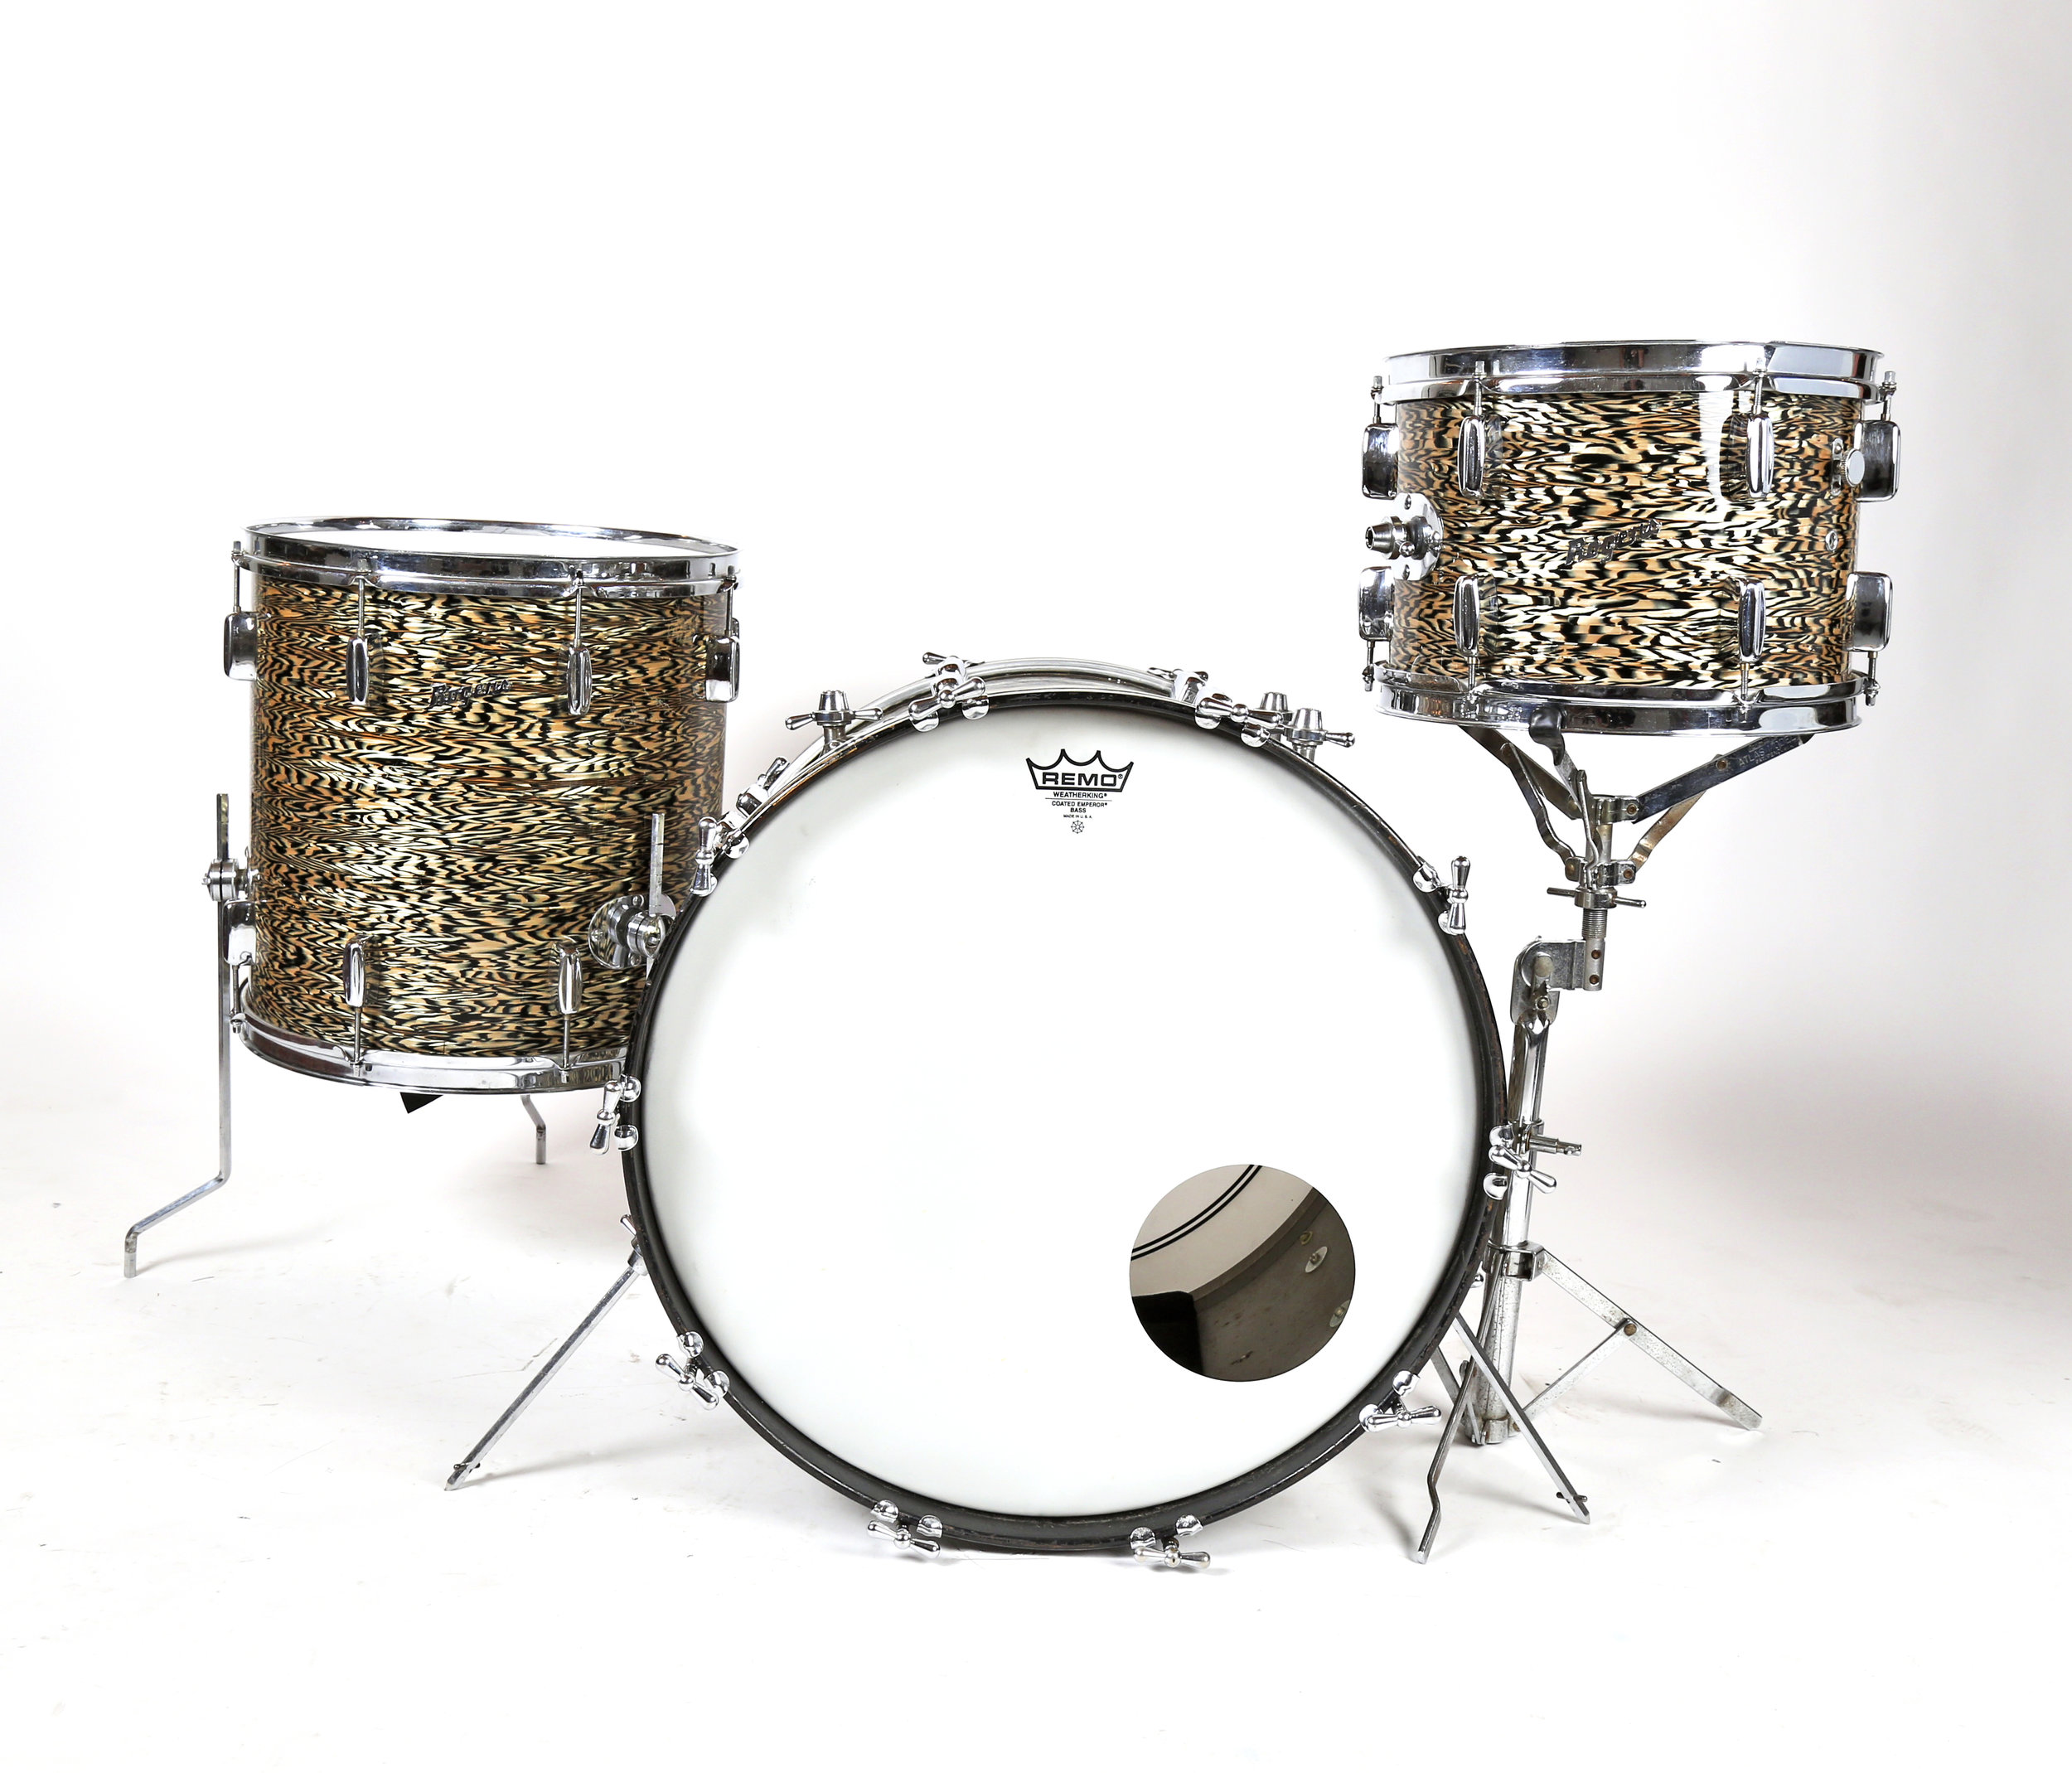 Dorio Vintage Drum_Rodgers Black On_1843.jpg